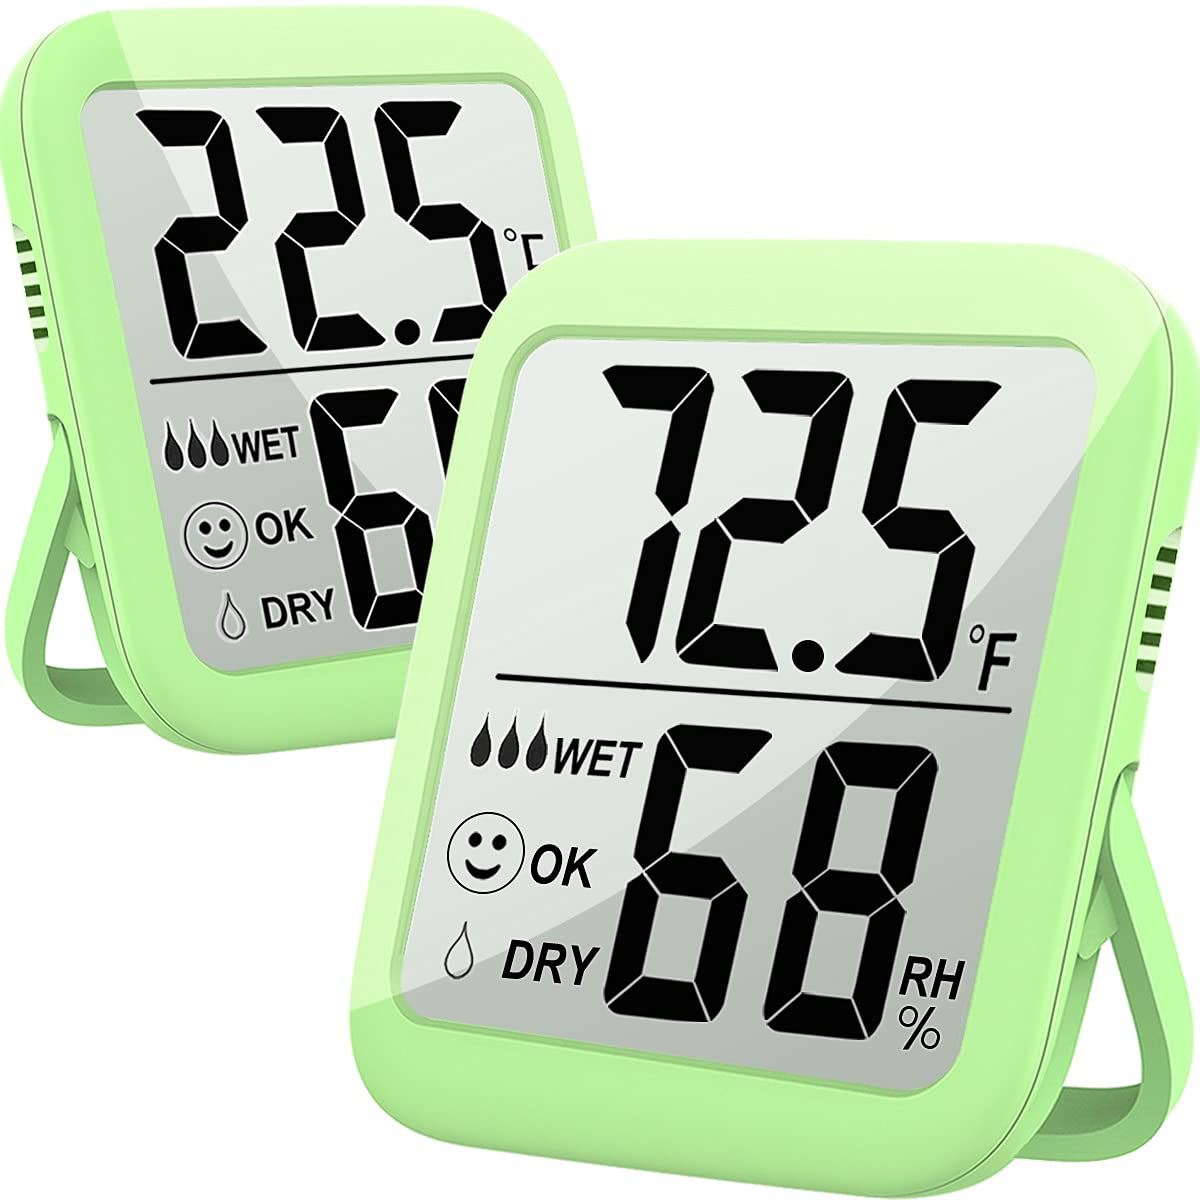 Humidity Gauge, 2 Pack Max Indoor Thermometer Hygrometer Humidity Meter Temperature and Humidity Monitor with Dual Sensors for Bed Room, Pet Reptile, Plant, Greenhouse, Basement, Humidor, Guitar